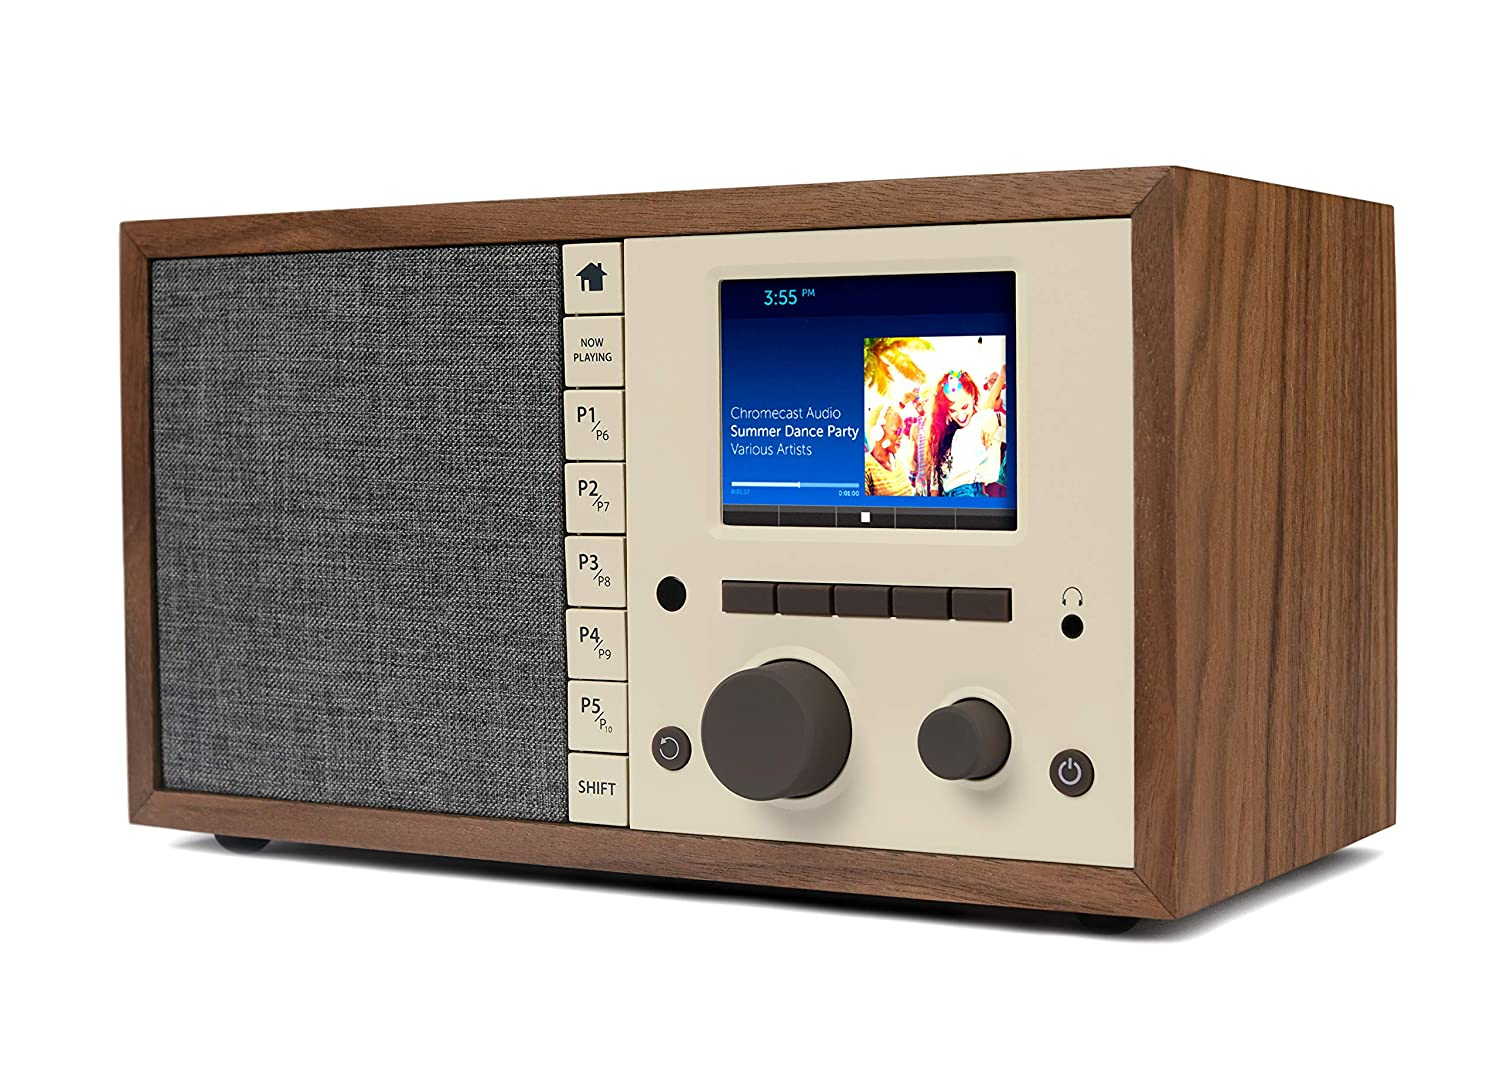 Amazon.com: Grace Digital Mondo+ Classic: Radio inalámbrica ...